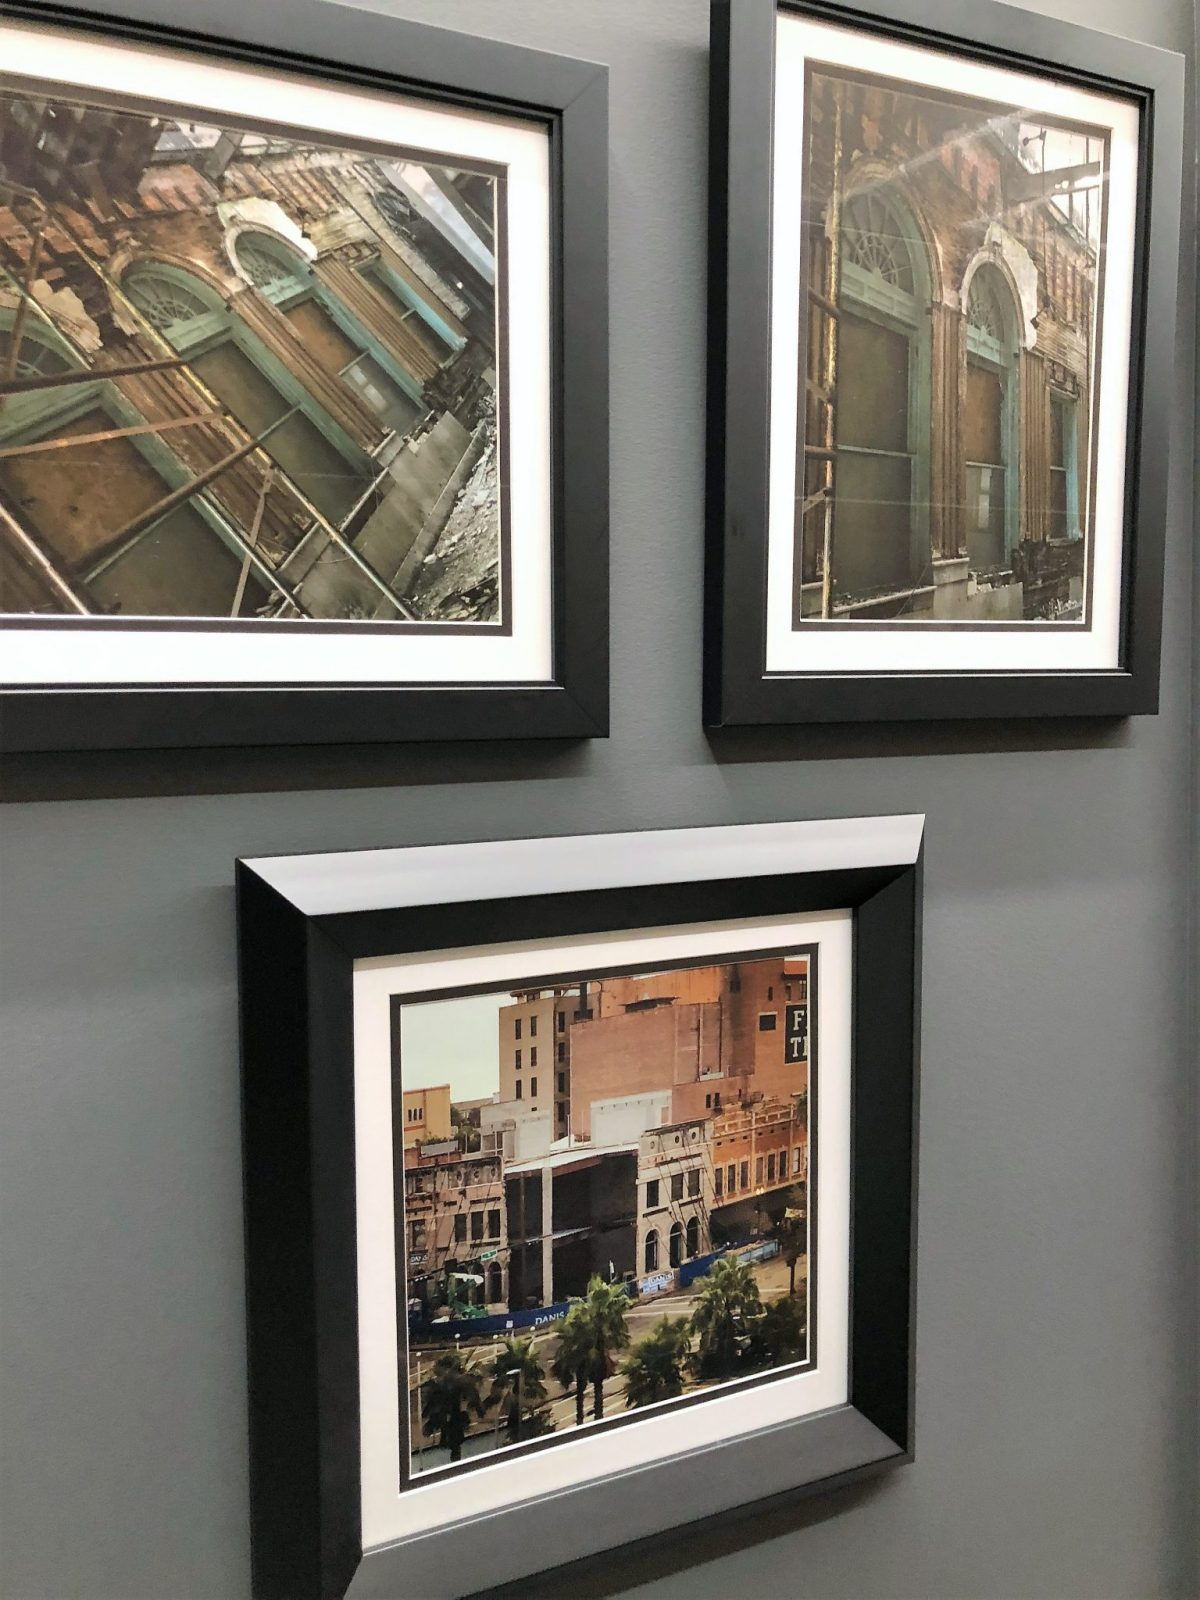 Pictures inside Cowford Chophouse